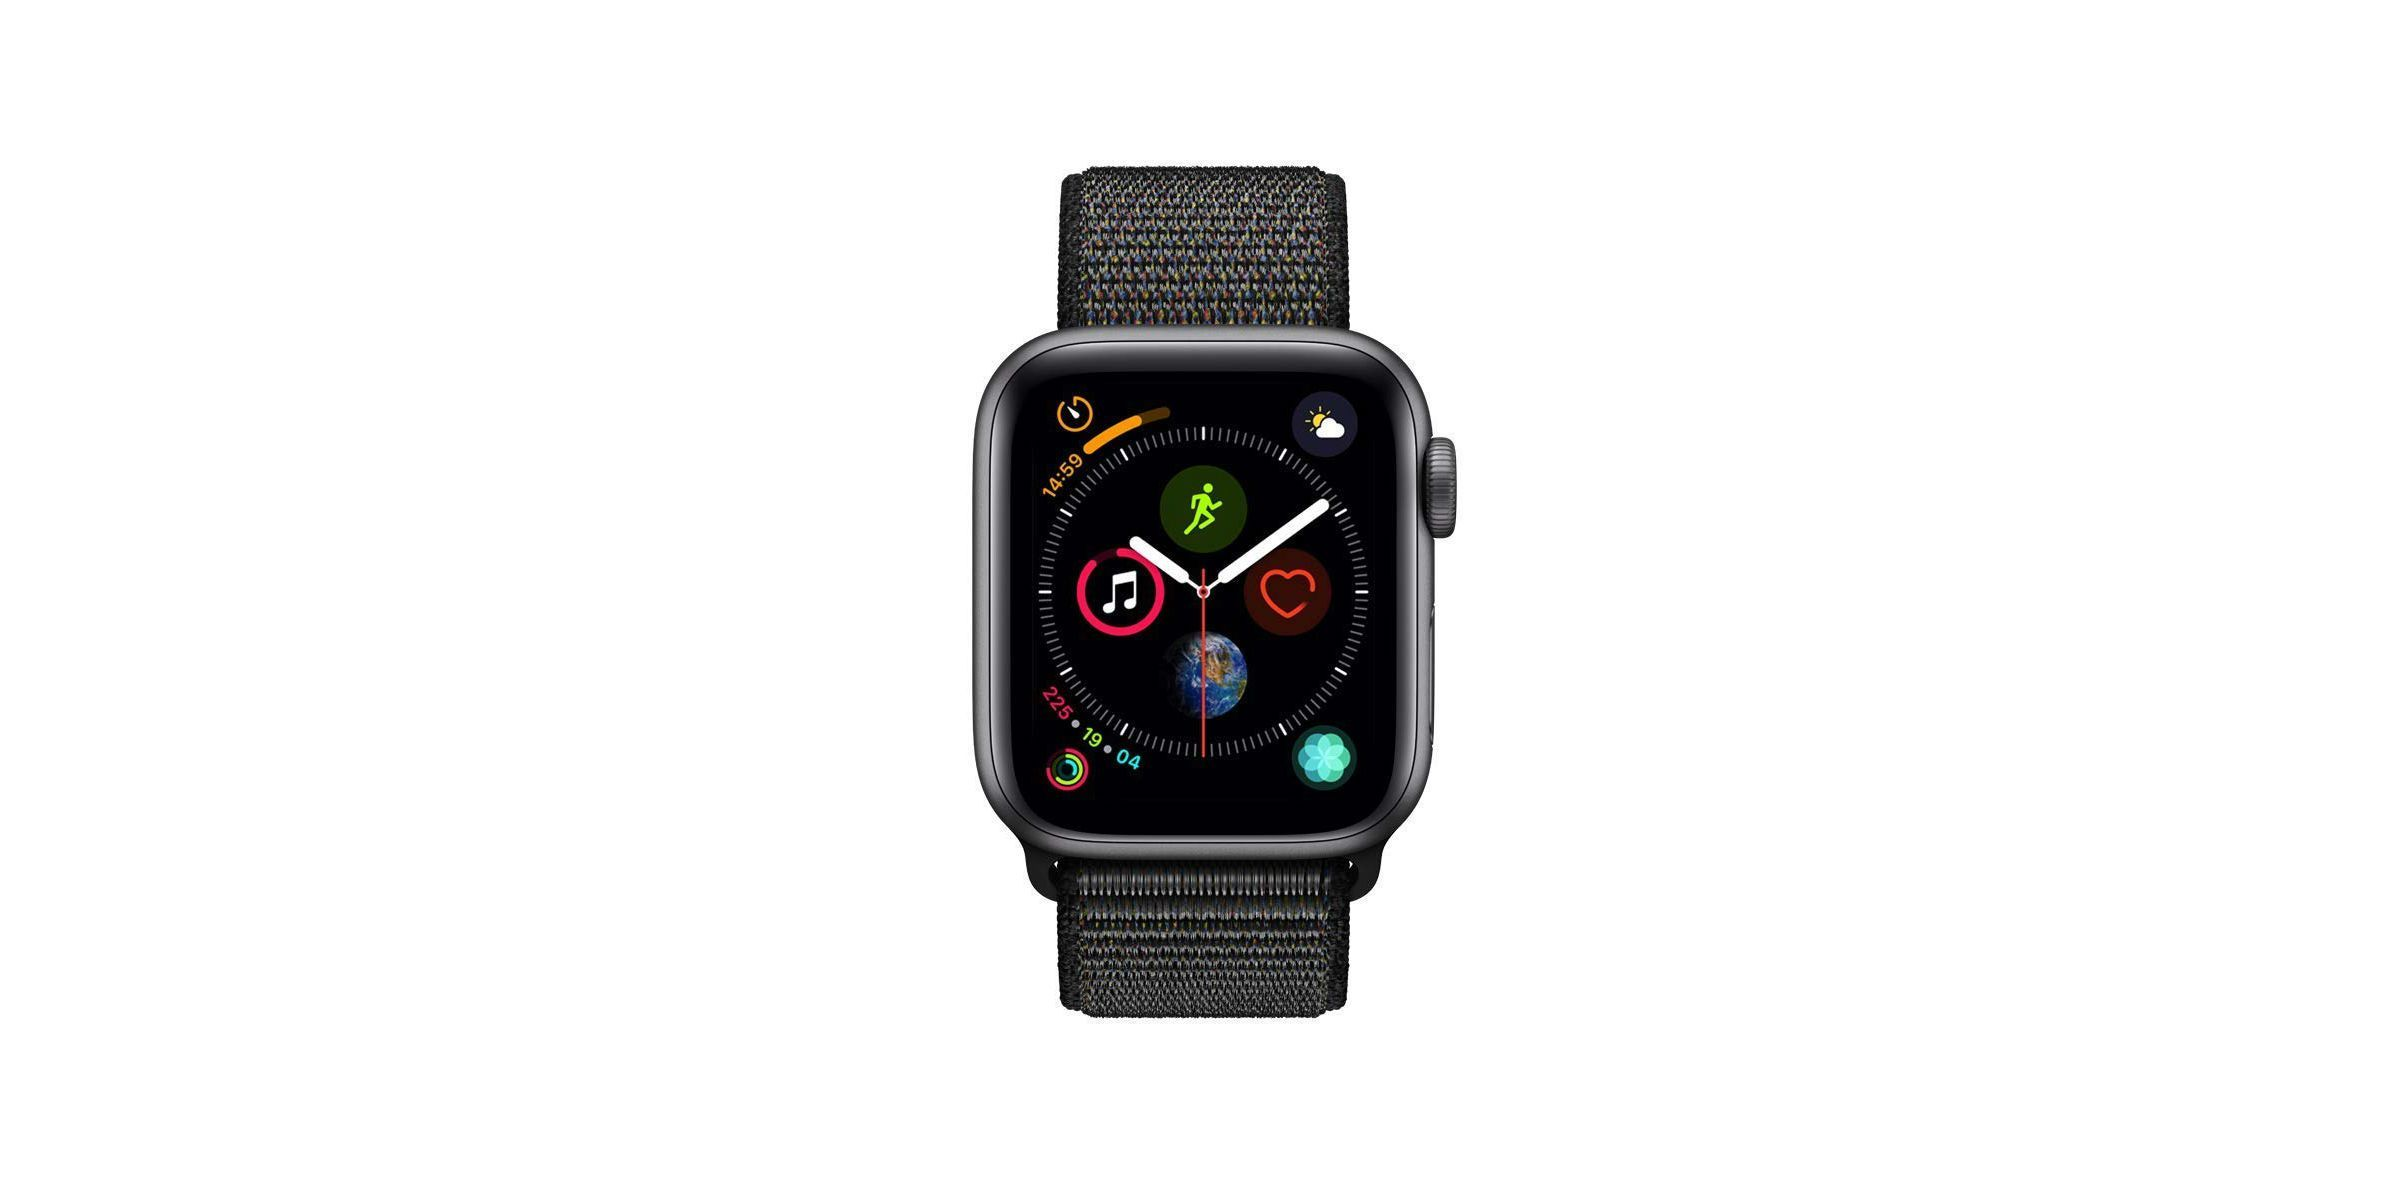 How to use fitness app on apple watch series 3